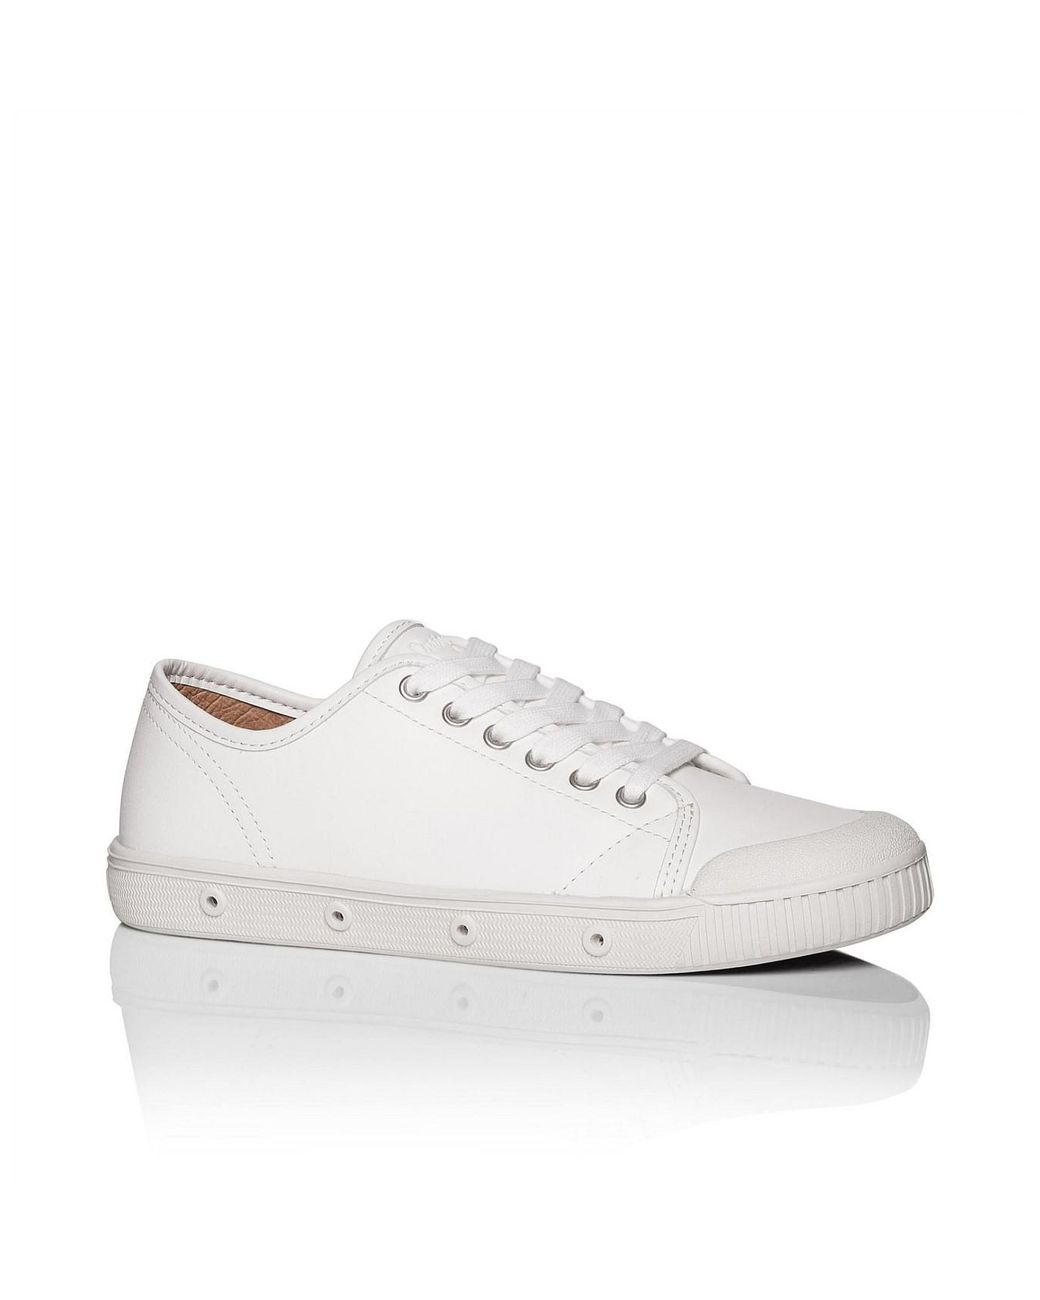 03cd6e4e4838 Spring Court G2 Slim Nappa Sneaker in White - Lyst